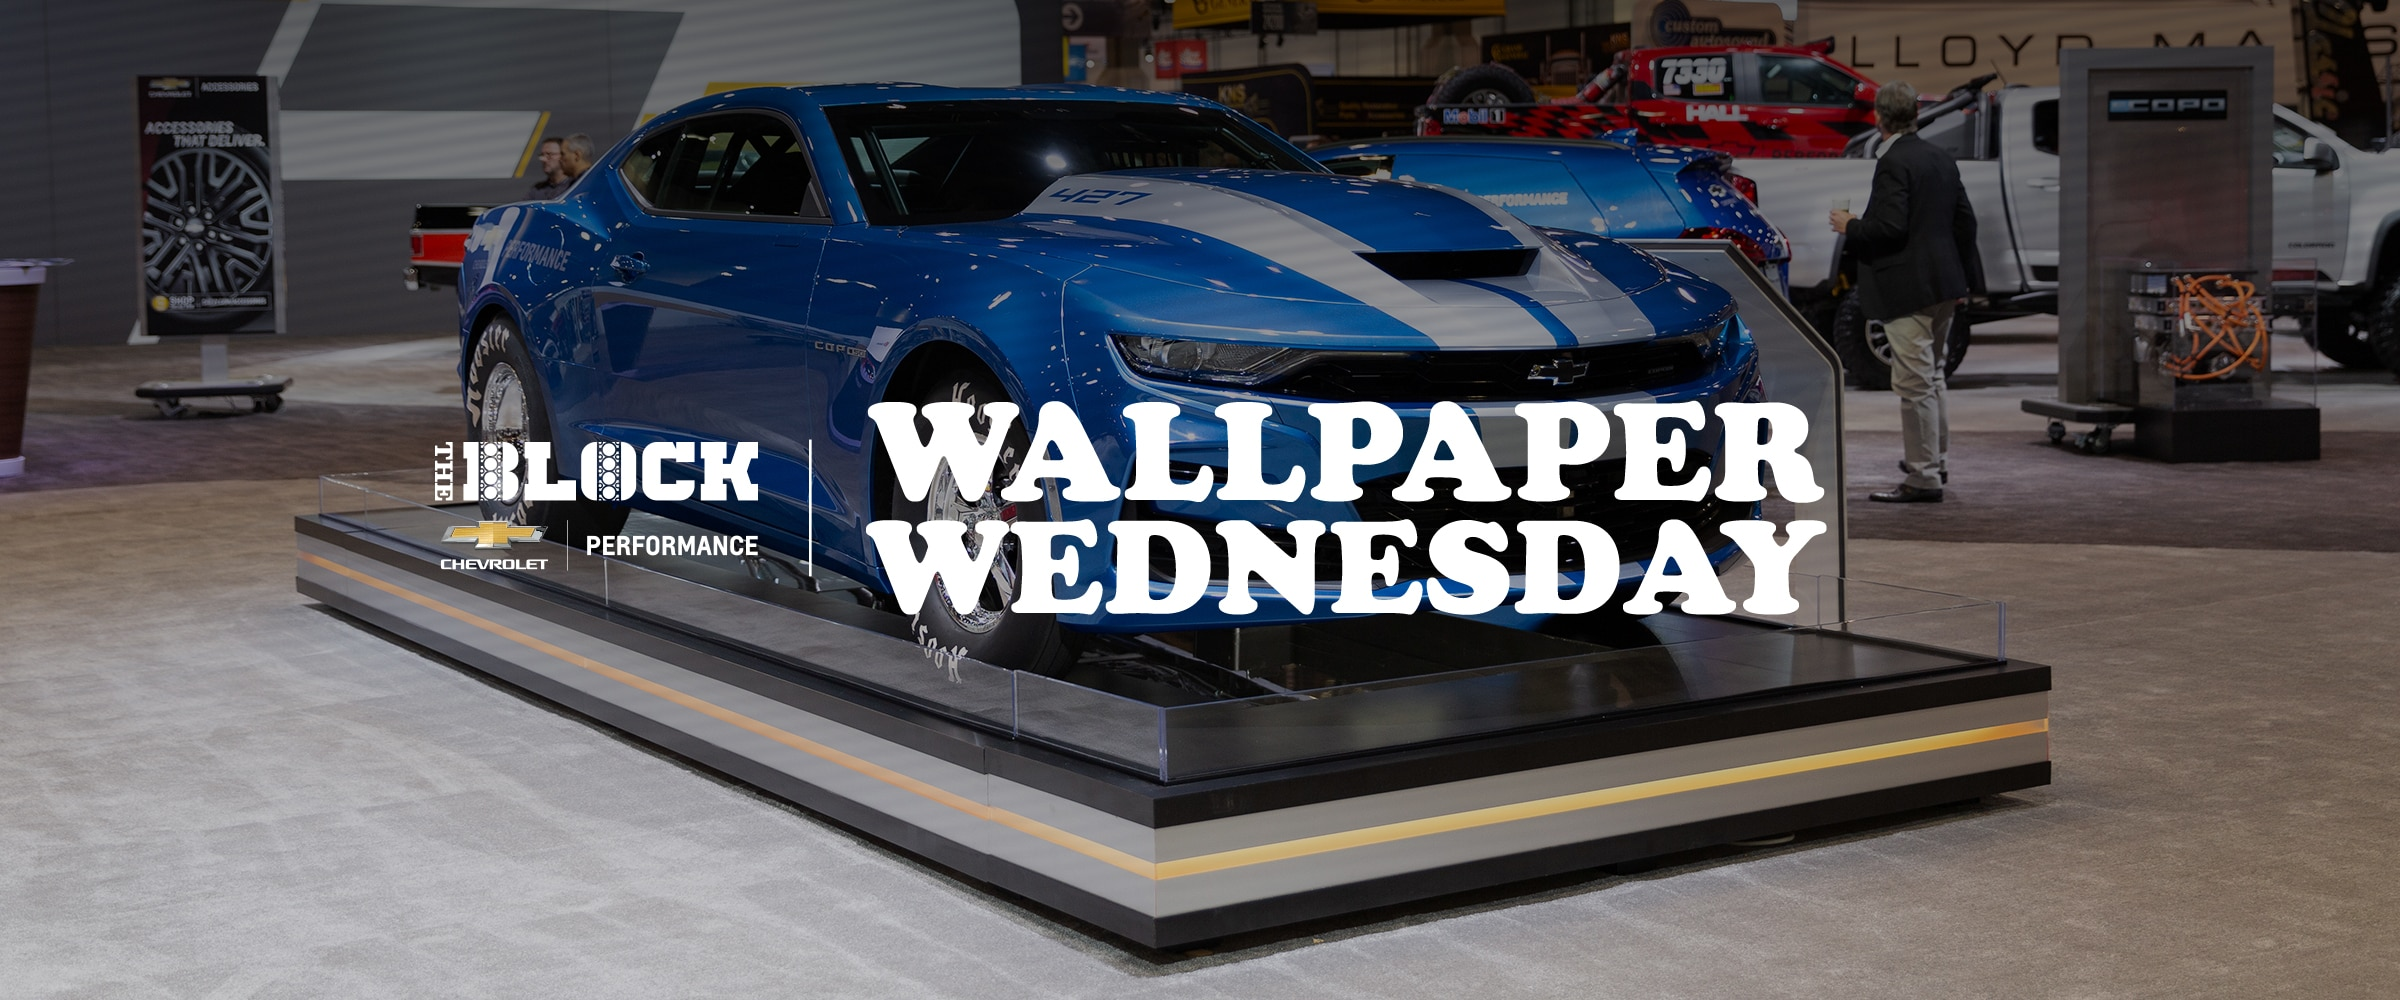 Vehicles, News, Parts, Chevrolet Performance, Chevy, Chevrolet, Racing, Drag Racing, COPO, COPO Camaro Wallpaper, Wallpaper Wednesday, Downloads, COPO Registration